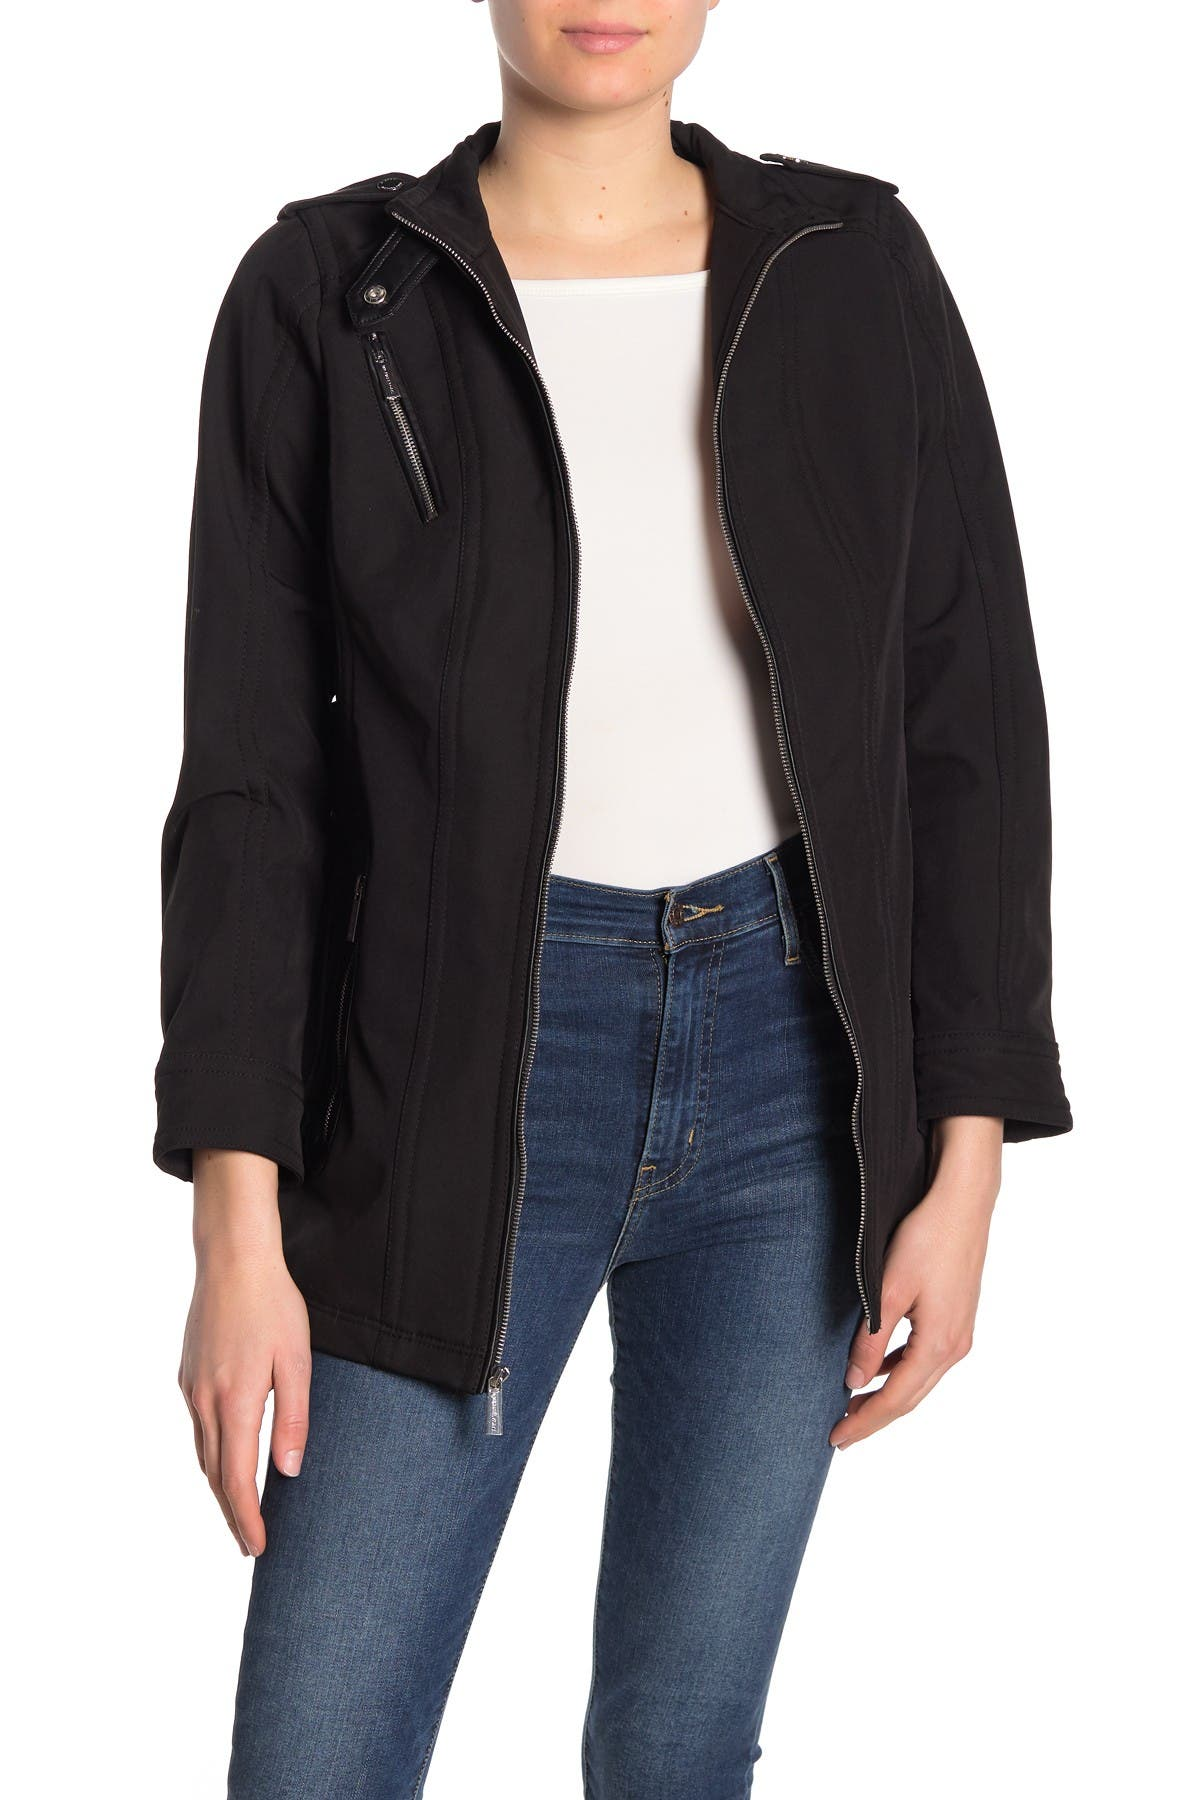 Image of MICHAEL Michael Kors Missy Faux Leather Trim Belted Jacket